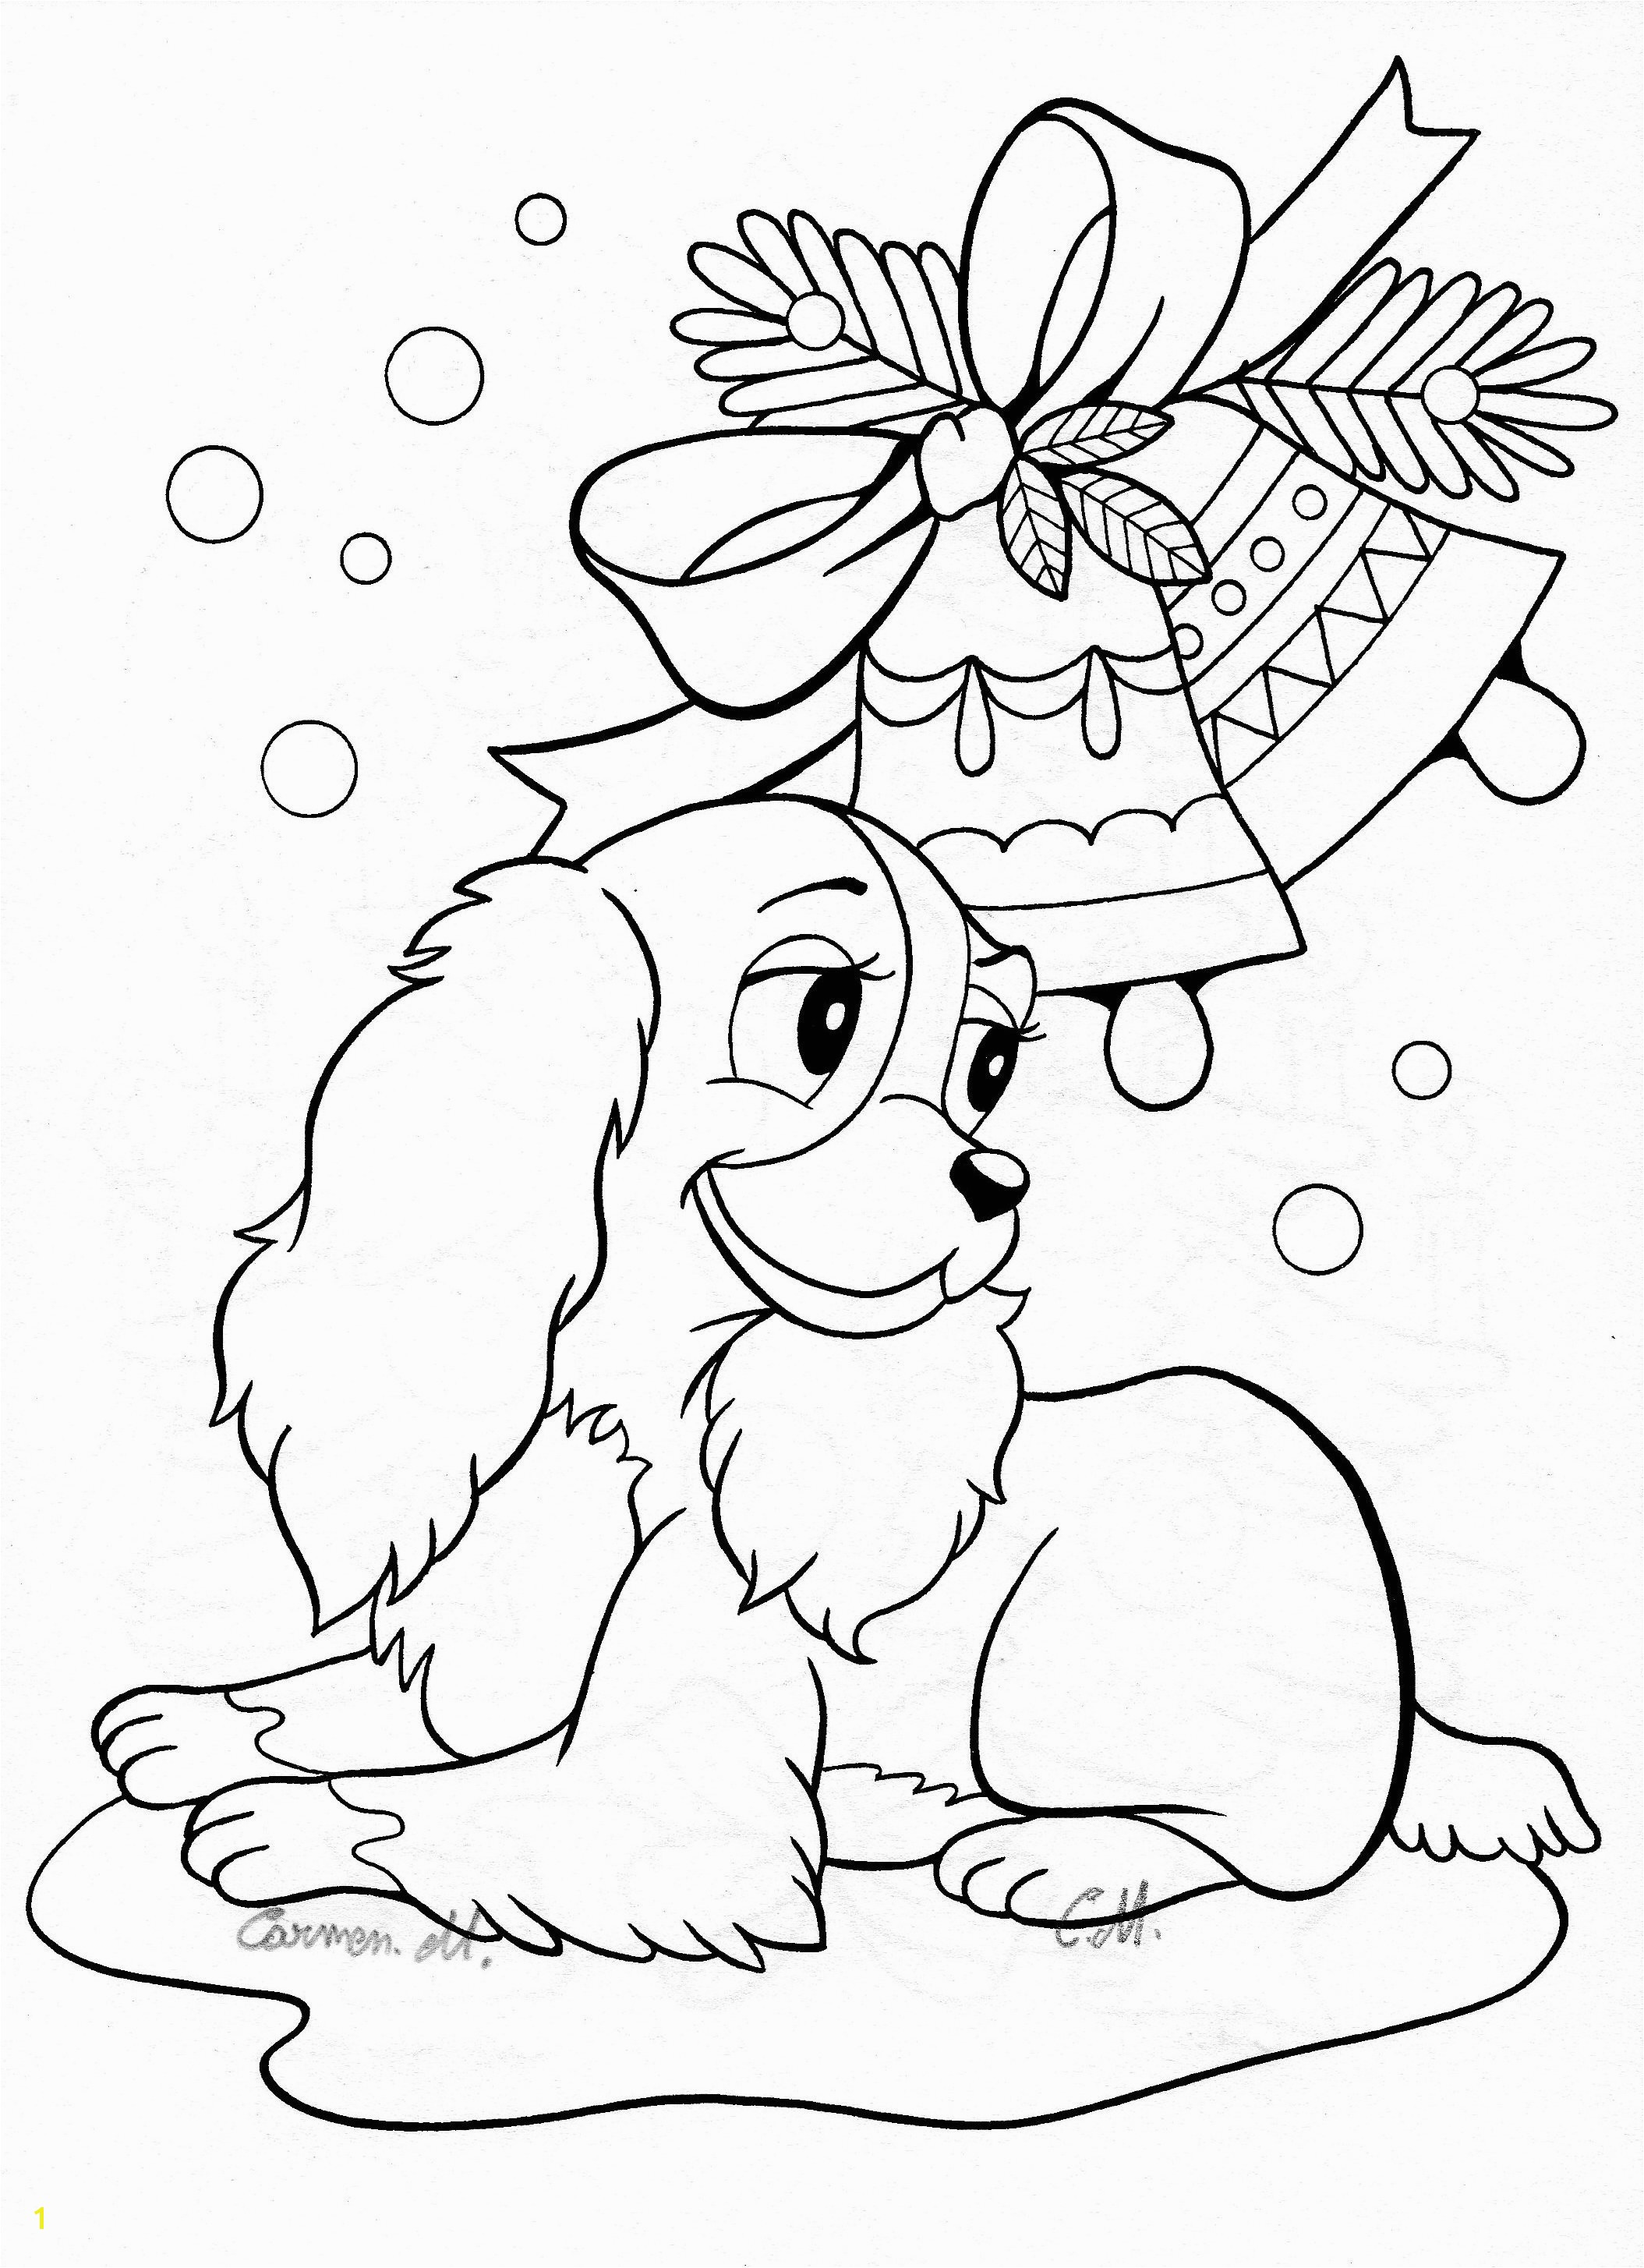 Free Printable Christmas Coloring Pages oriental Trading Xmas Coloring Pages Free Printable Fresh Nightmare before Christmas